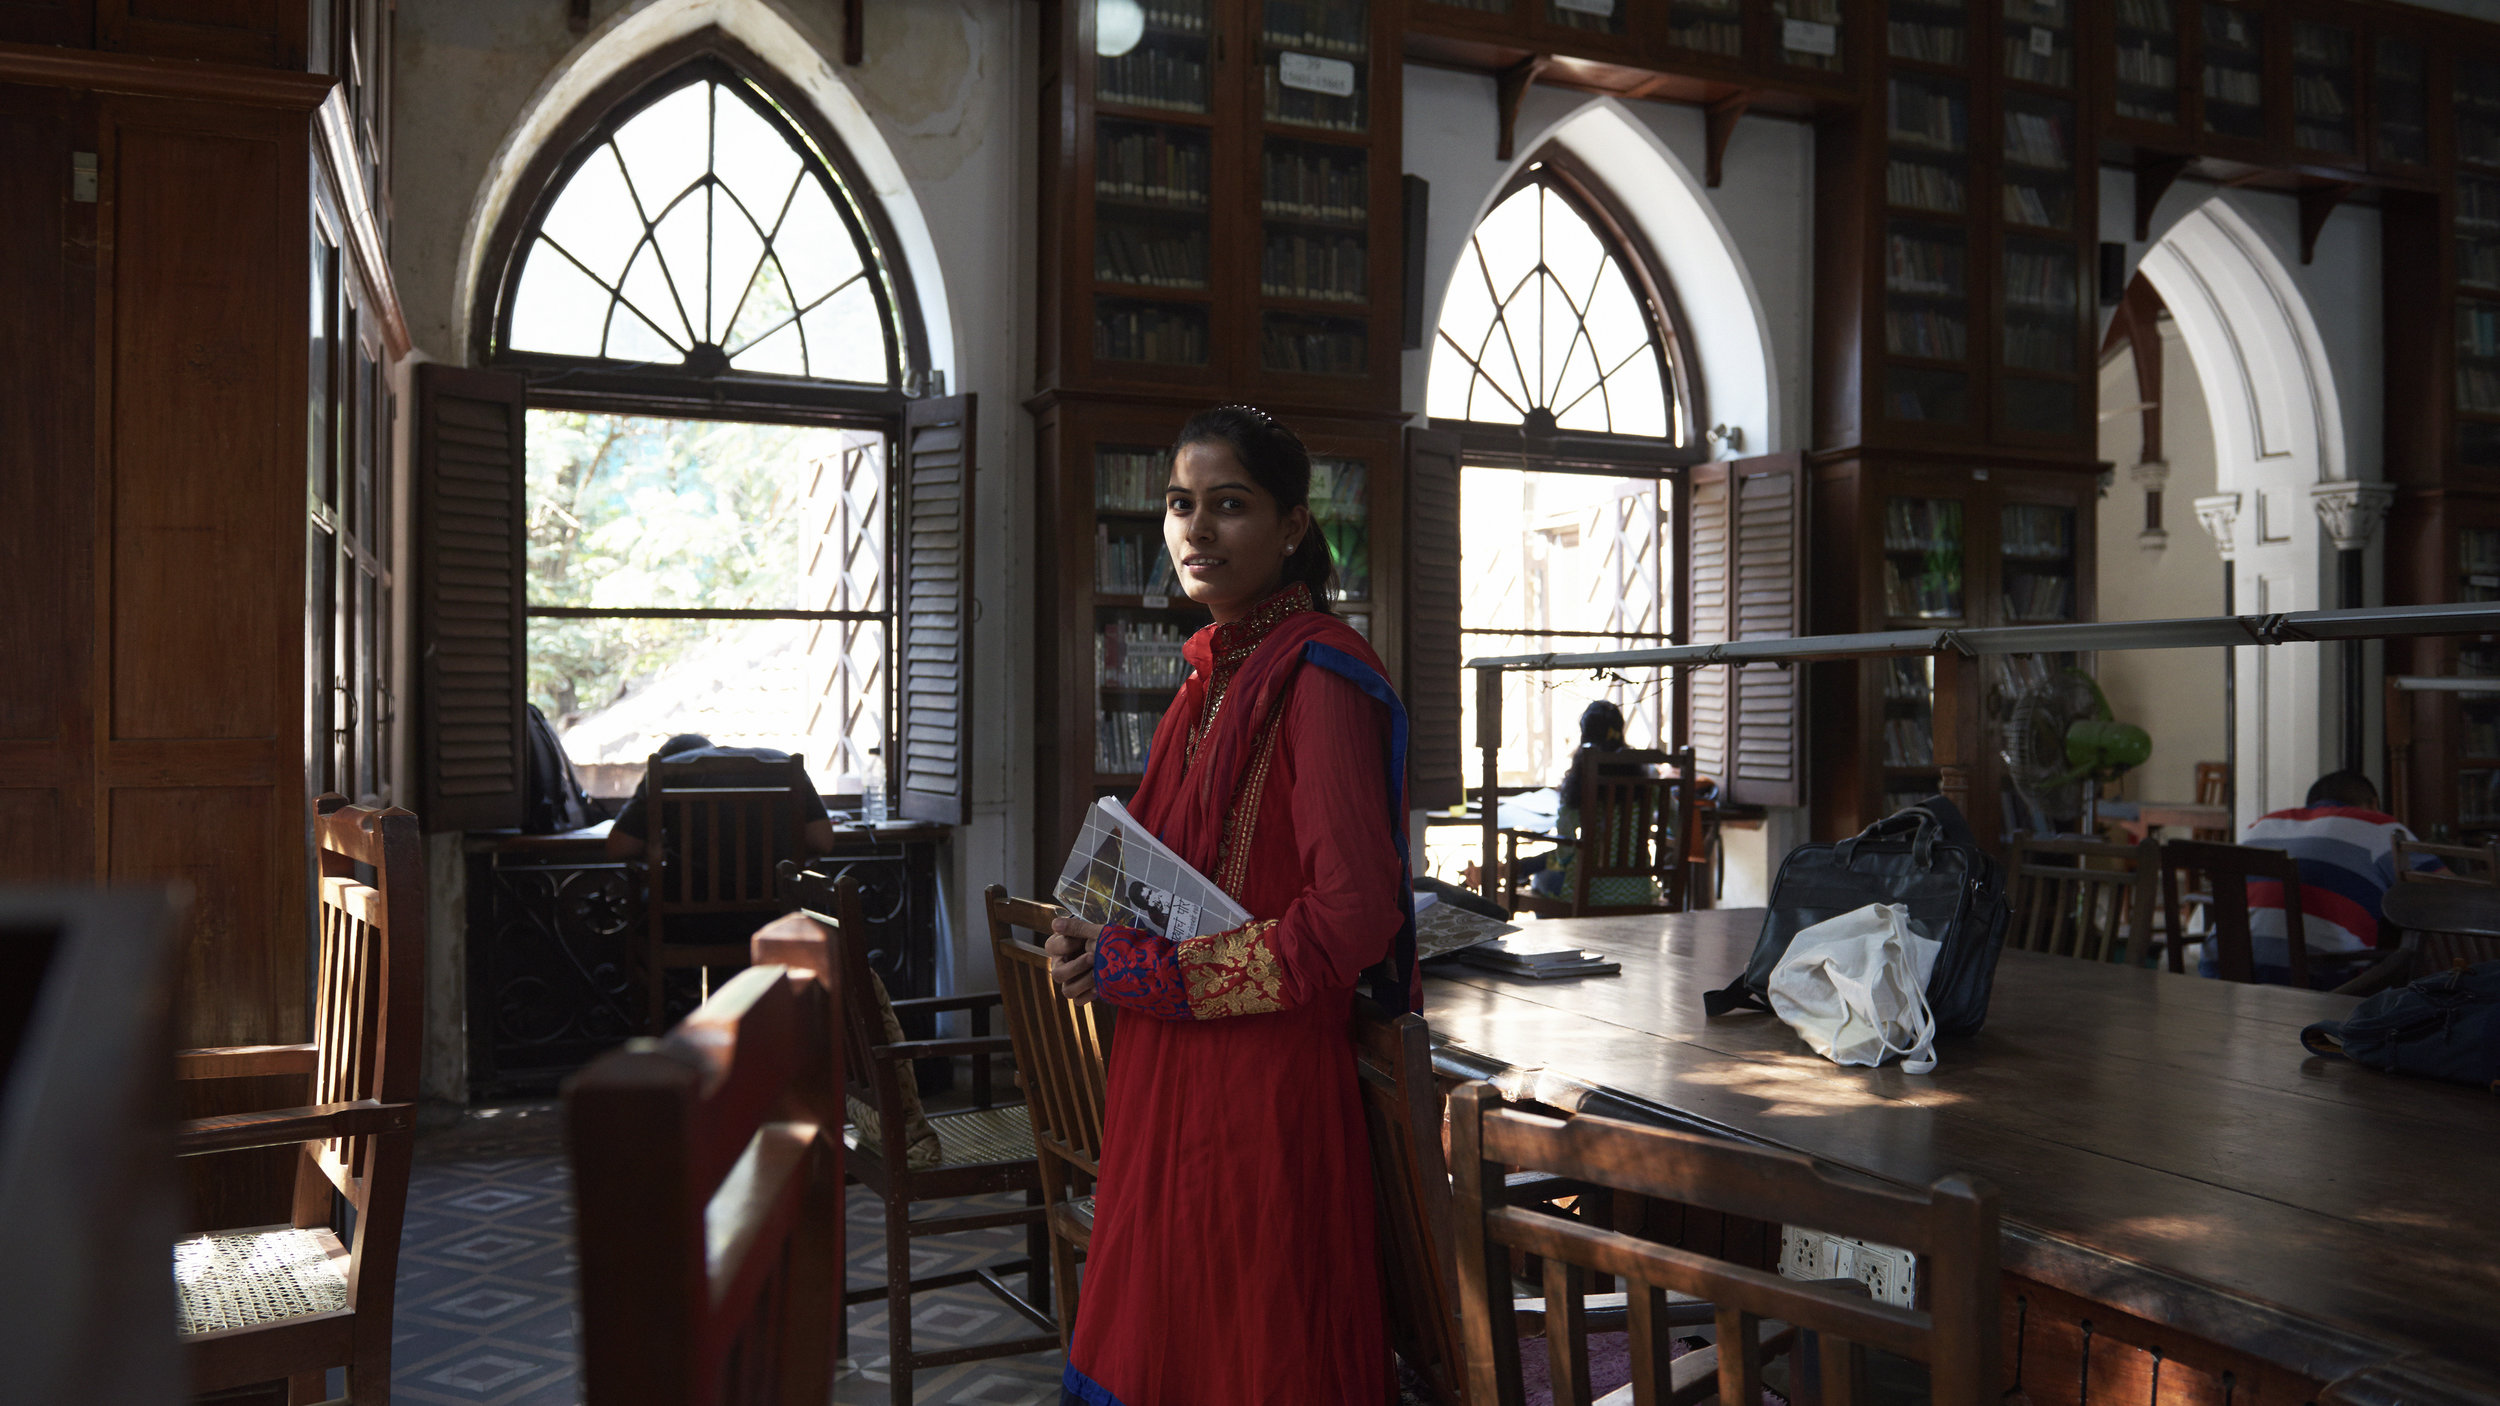 Miss Pinki Kamble, Librarian for two years now at this 151 year old heritage structure.